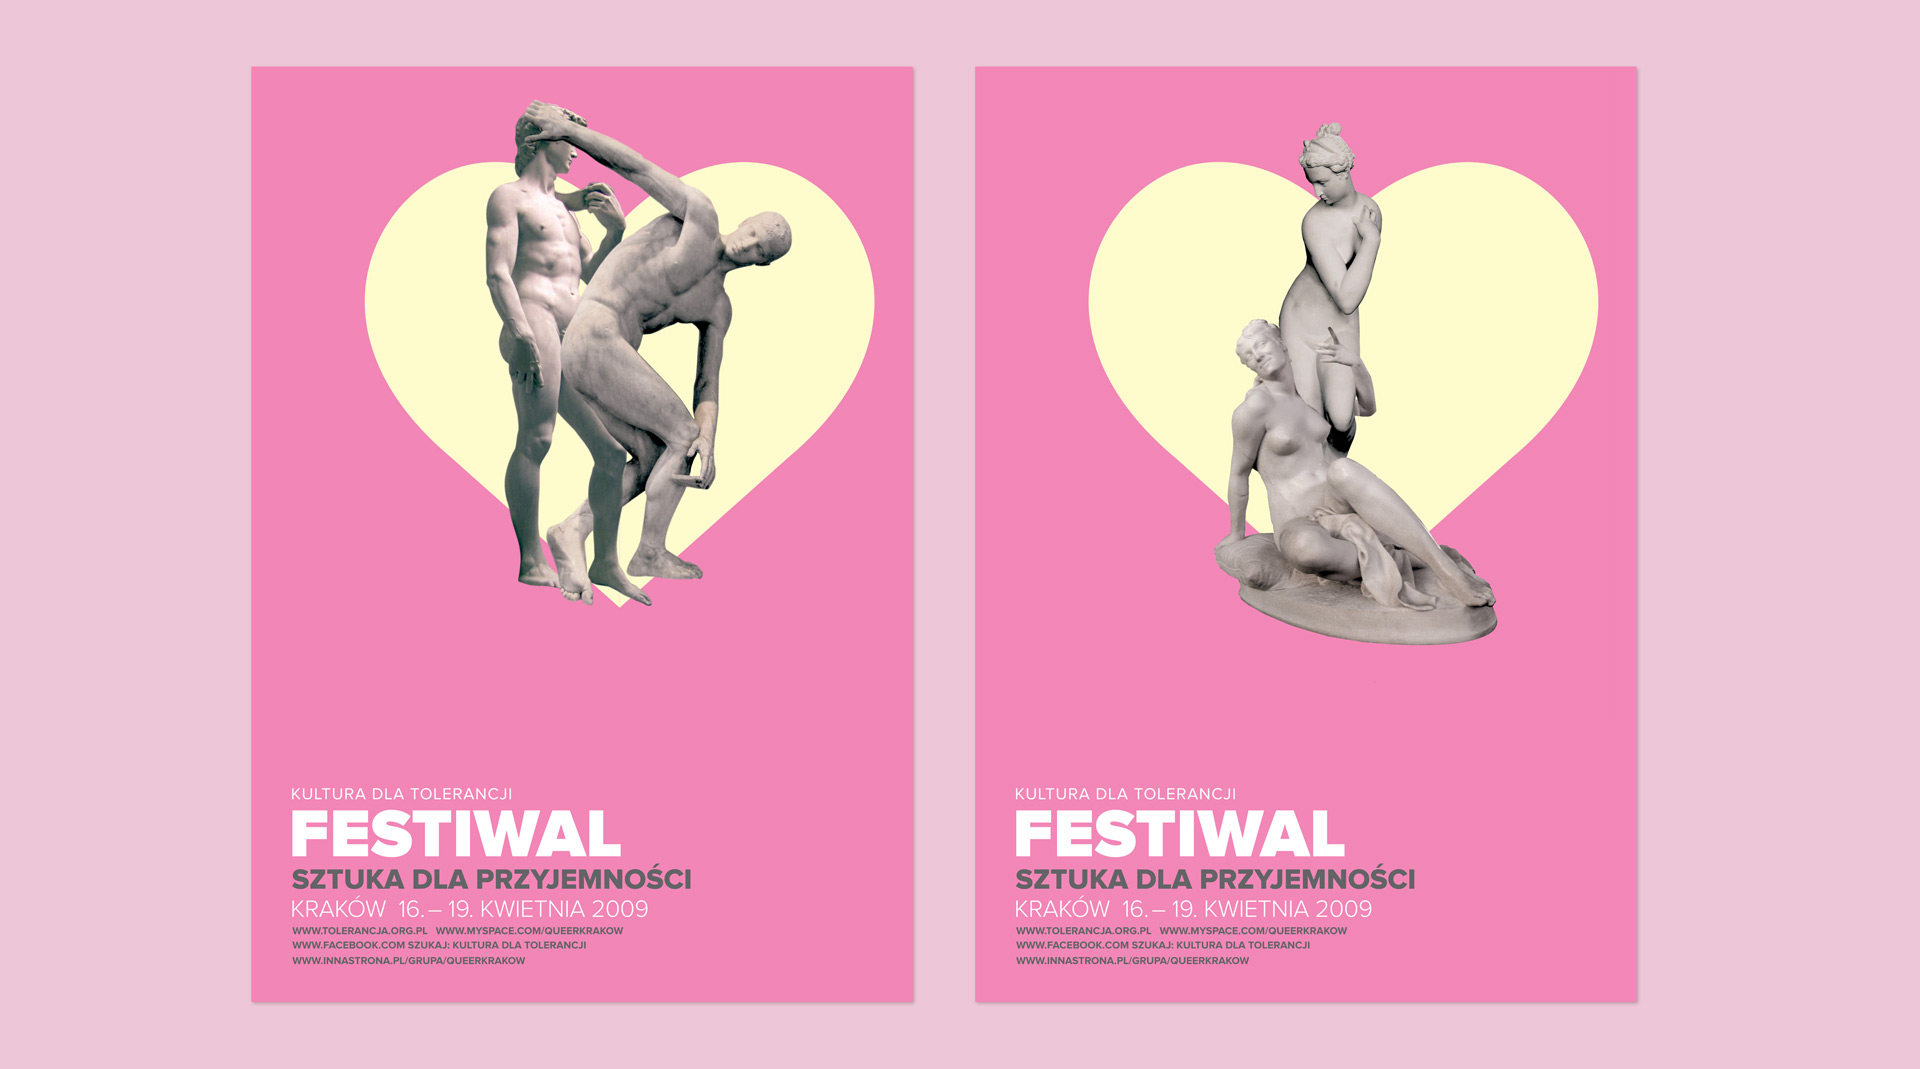 Mario Dzurila Festival Identity Krakow Cracow Culture Tolerance Movie Art Queer